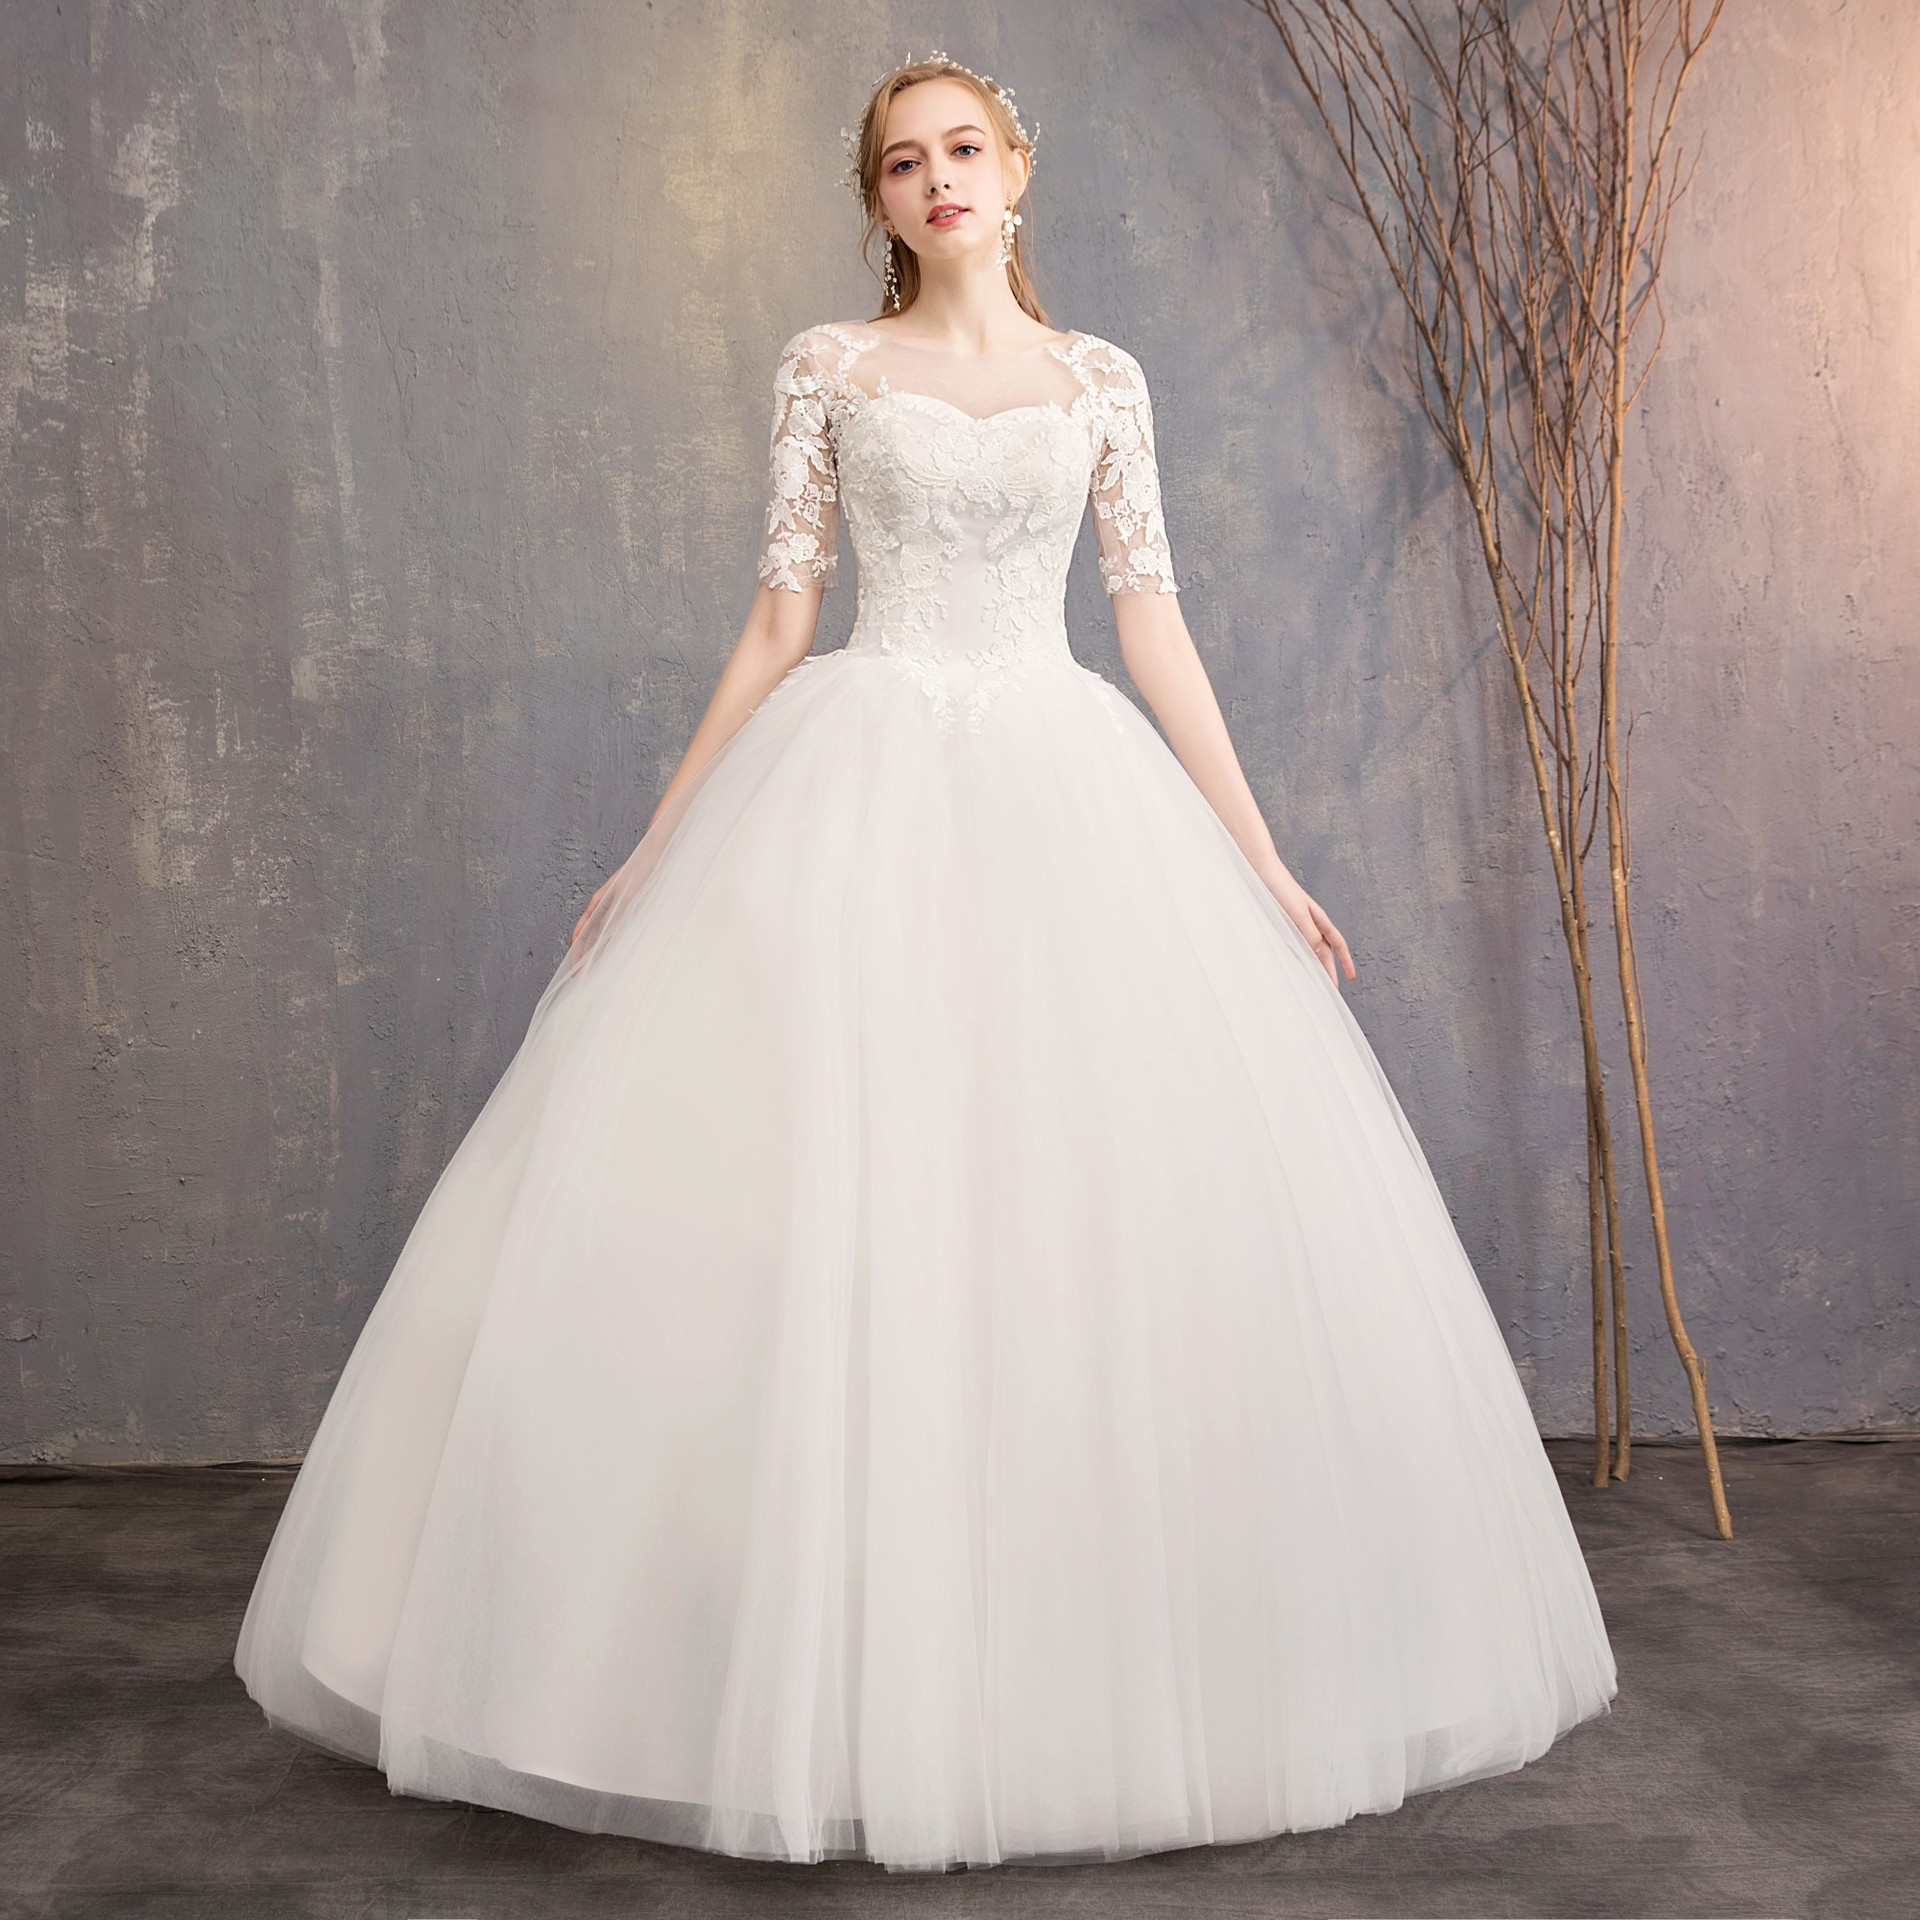 Vestido De Noiva Elegant Cream Wedding Dresses Ball Gown Lace Up Embroidery Sweetheart Formal Bride Dresses Robe De Mariee 2020